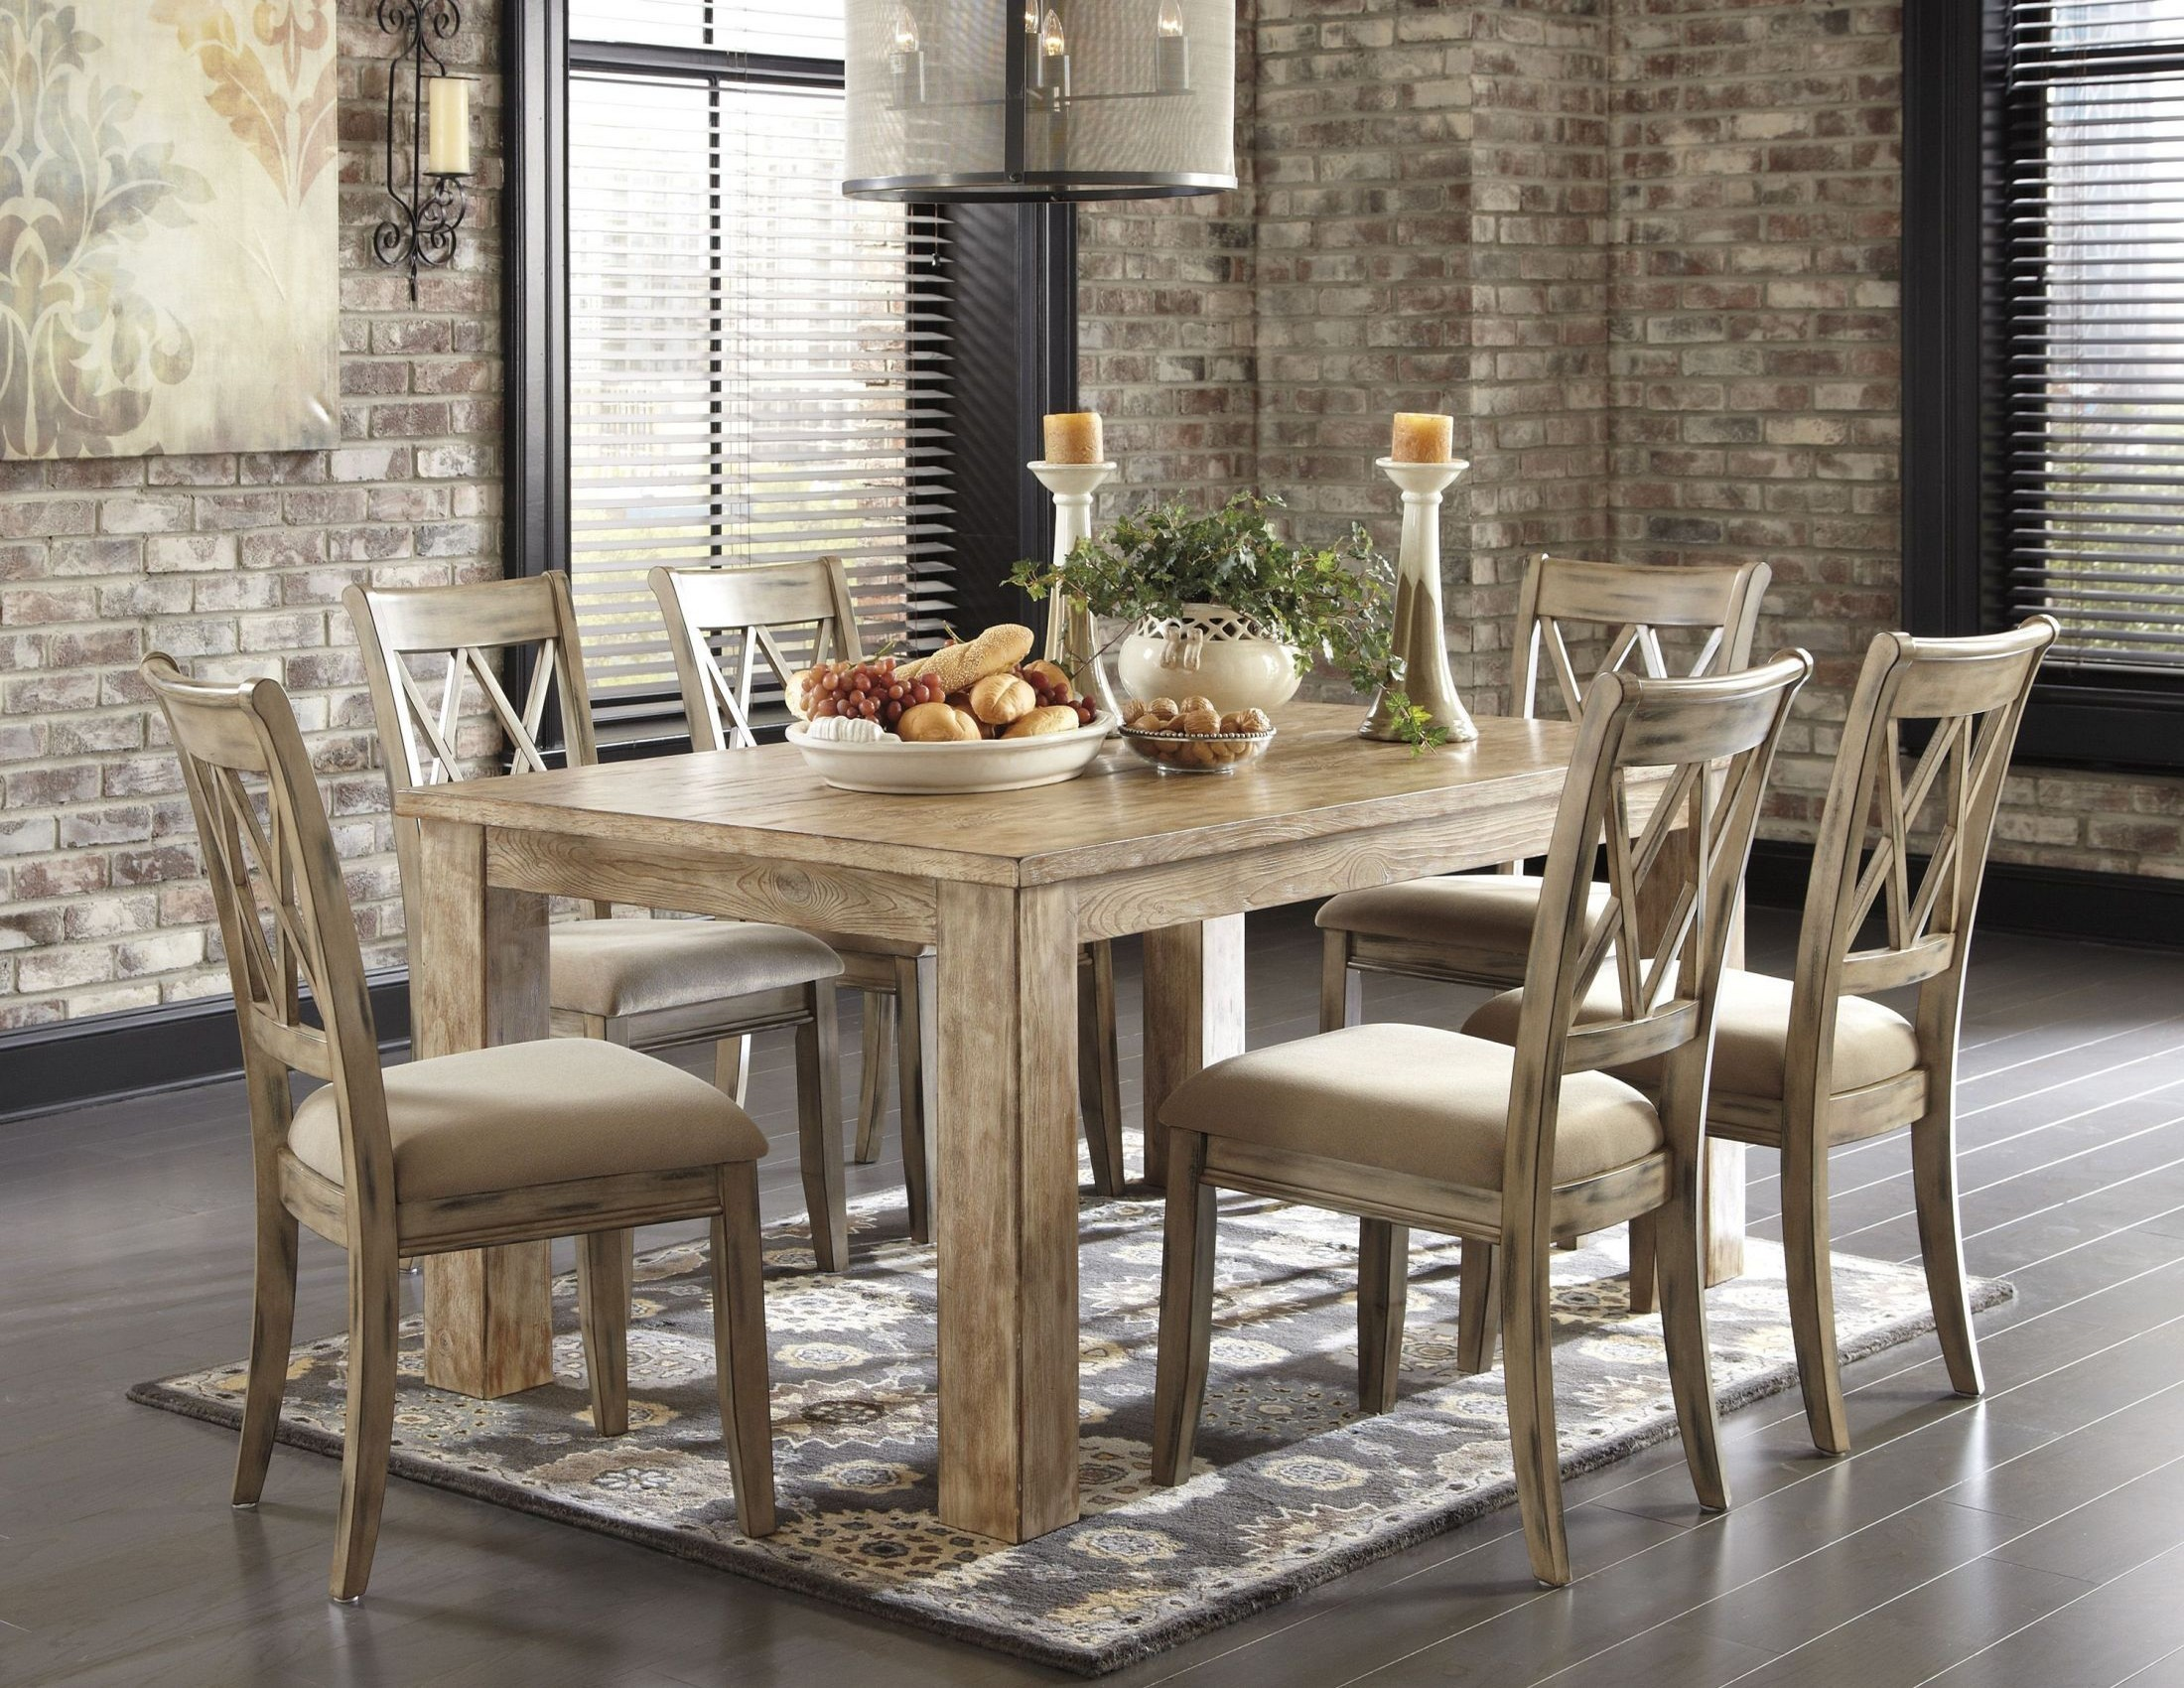 Mestler Driftwood Dining Room Set From Ashley (D540-225